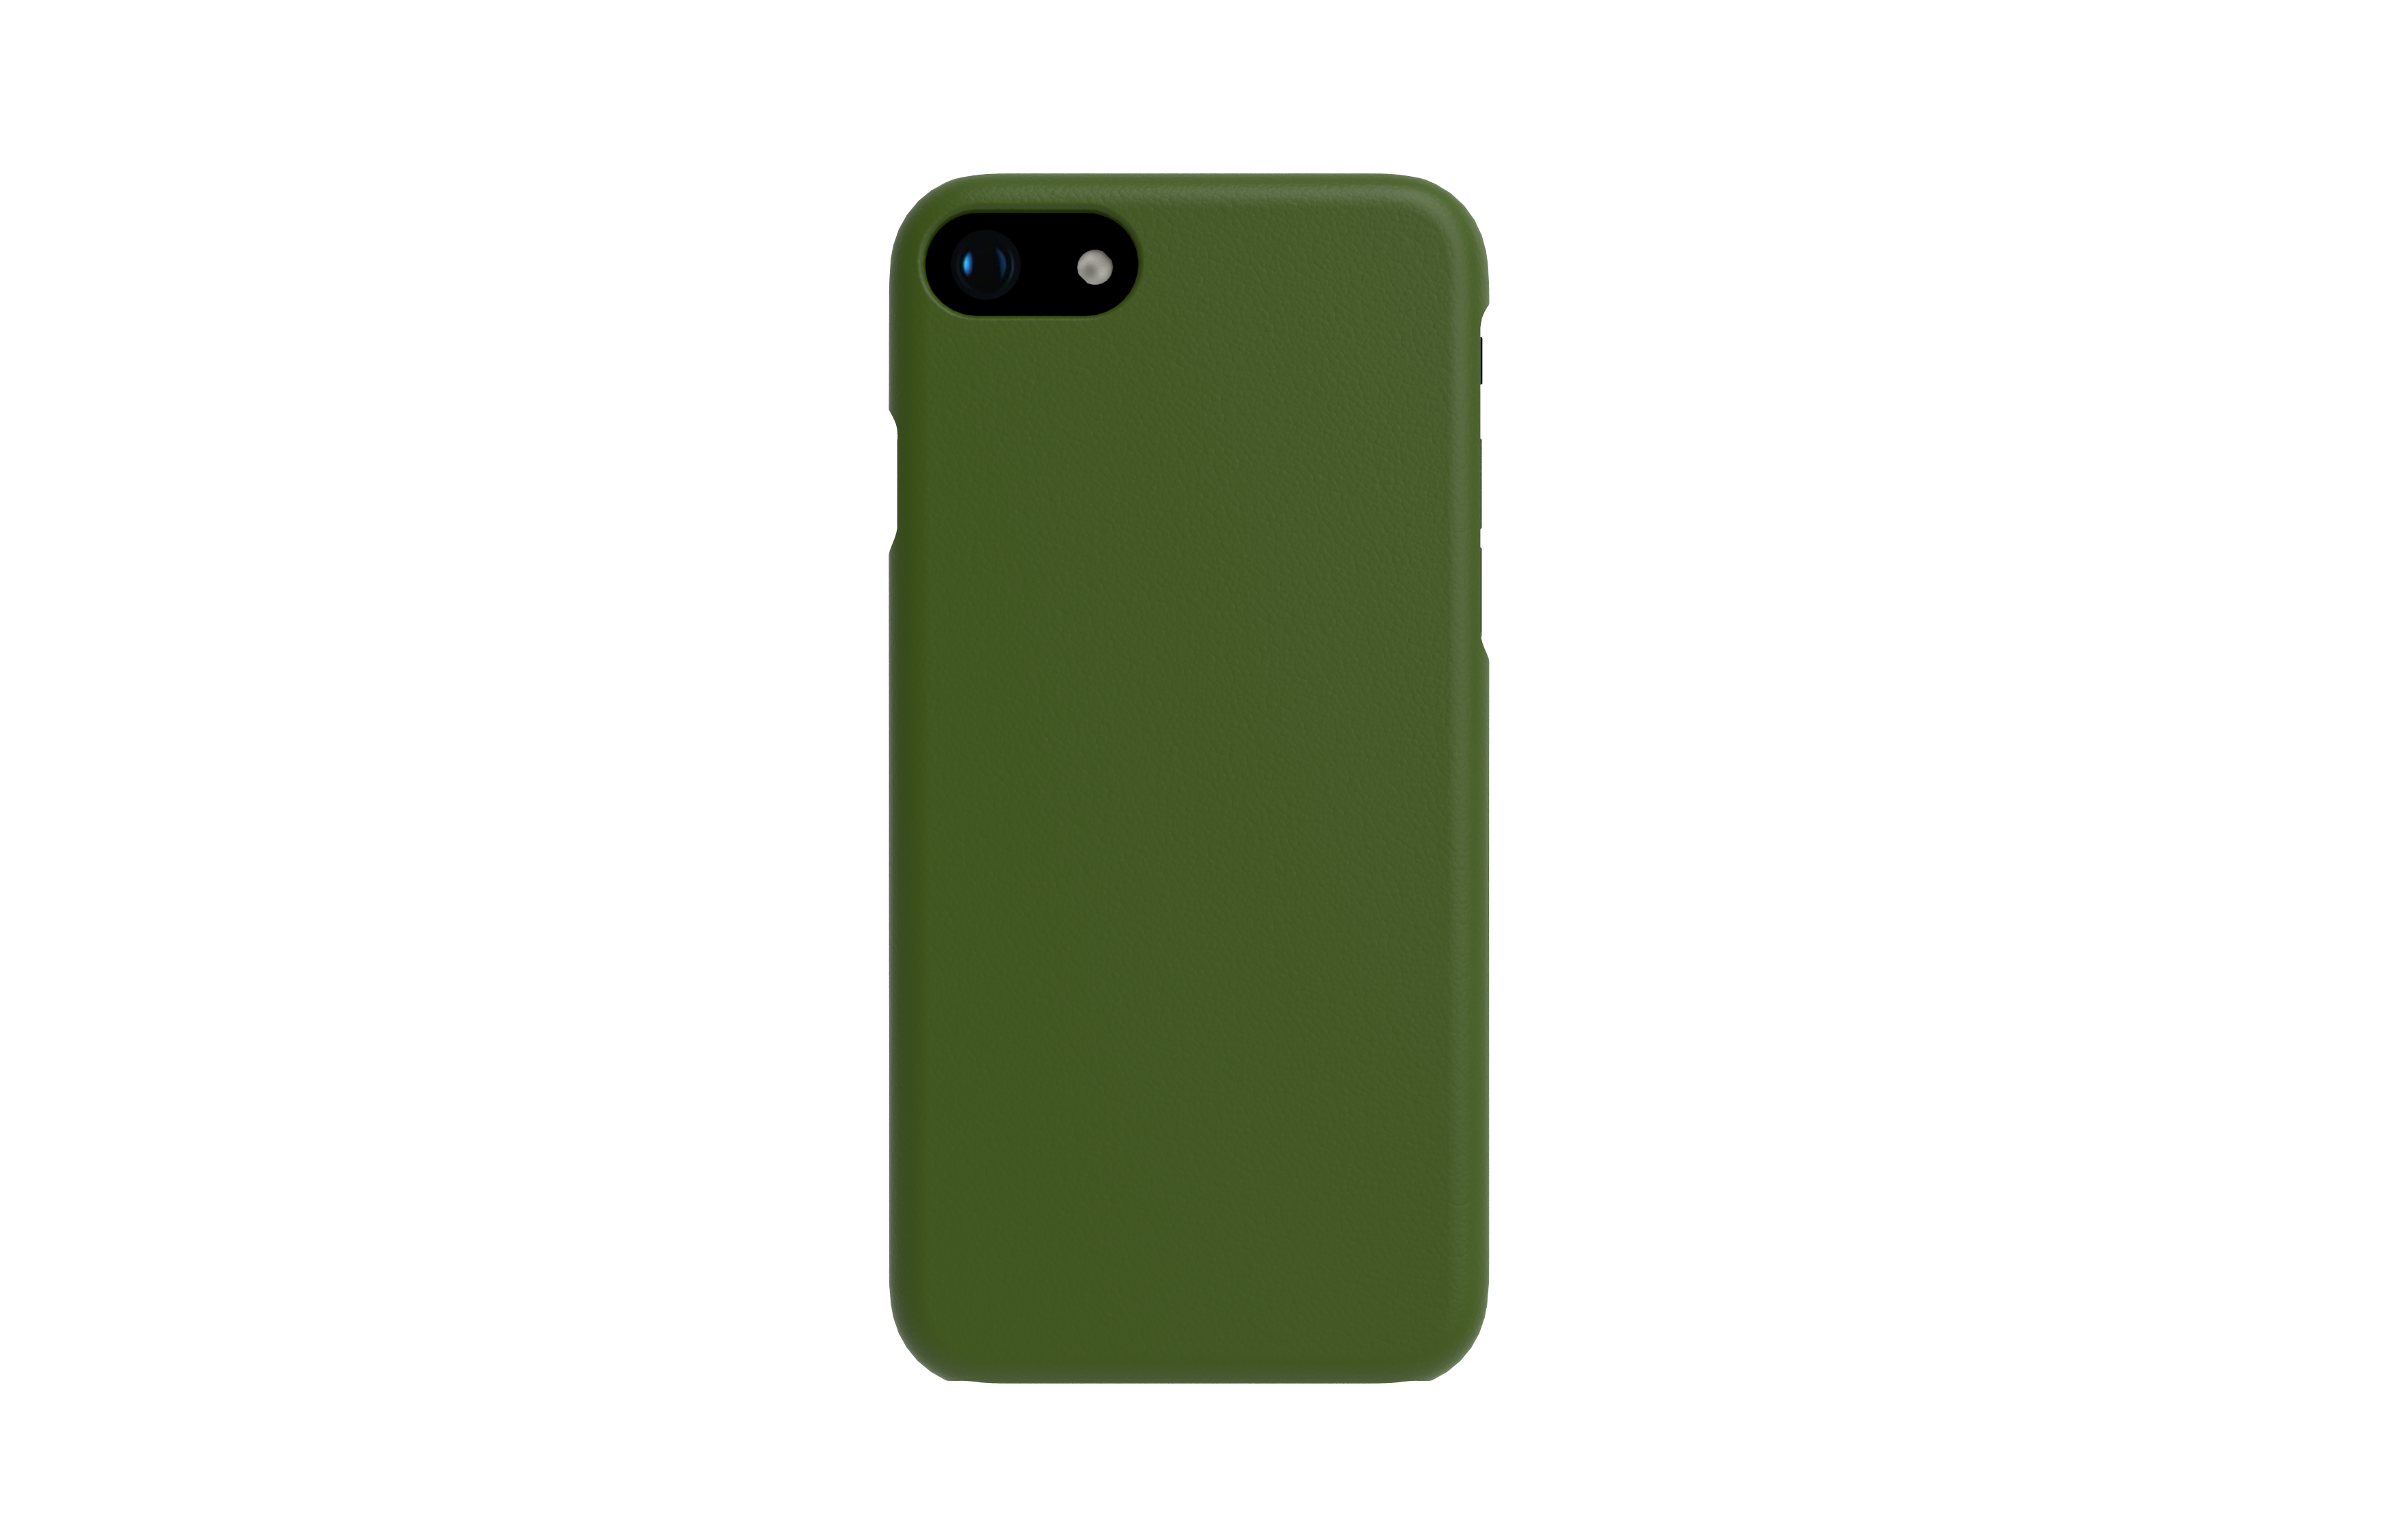 iphone4.7 green-1